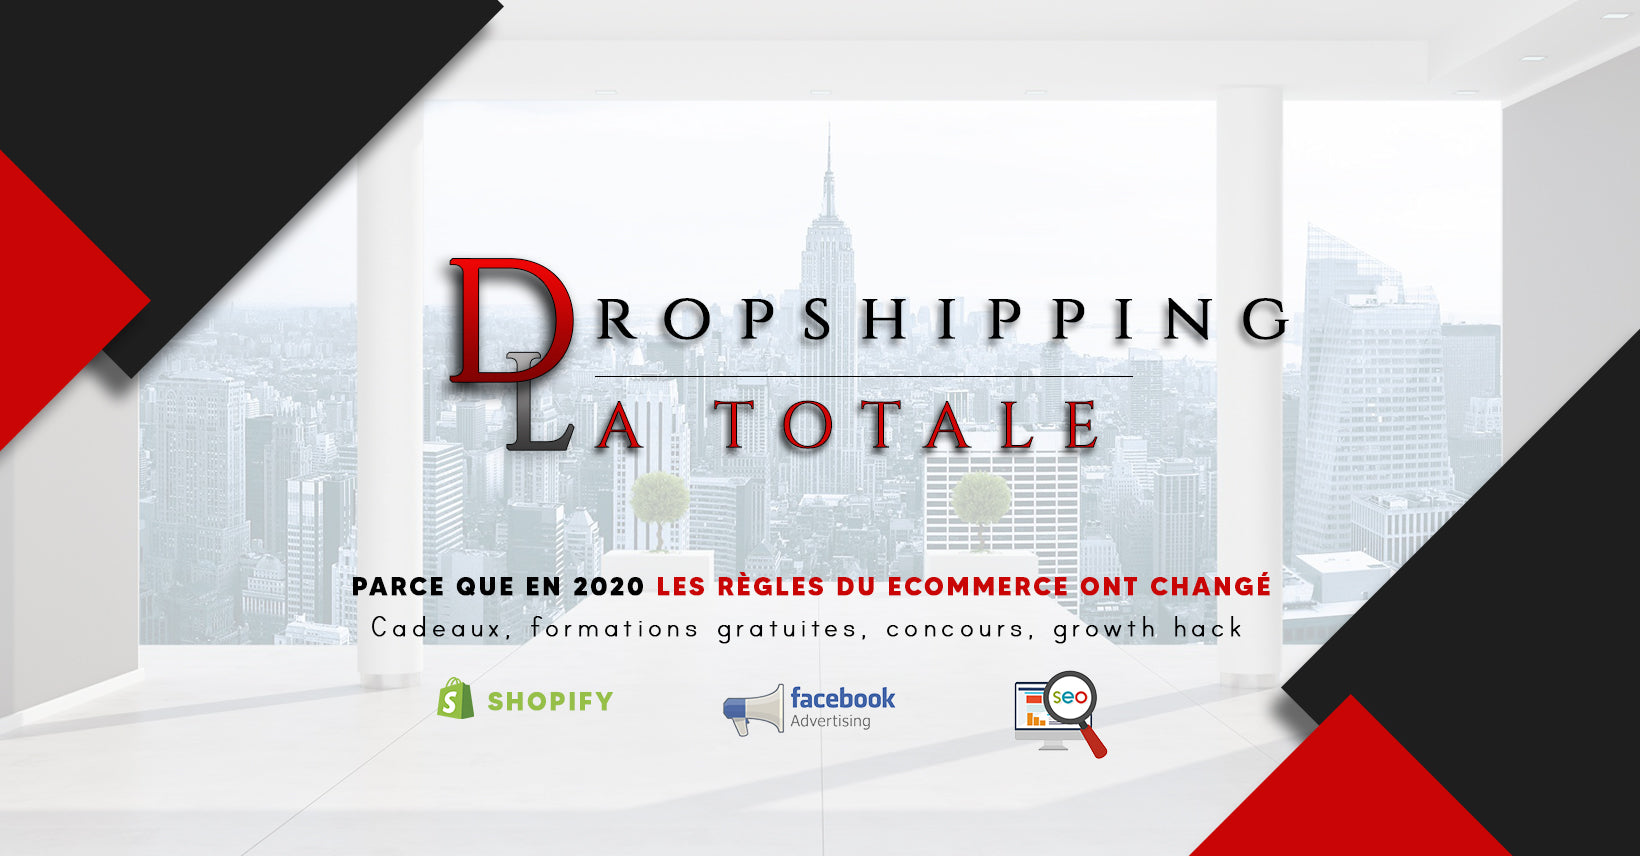 groupe dropshipping la totale